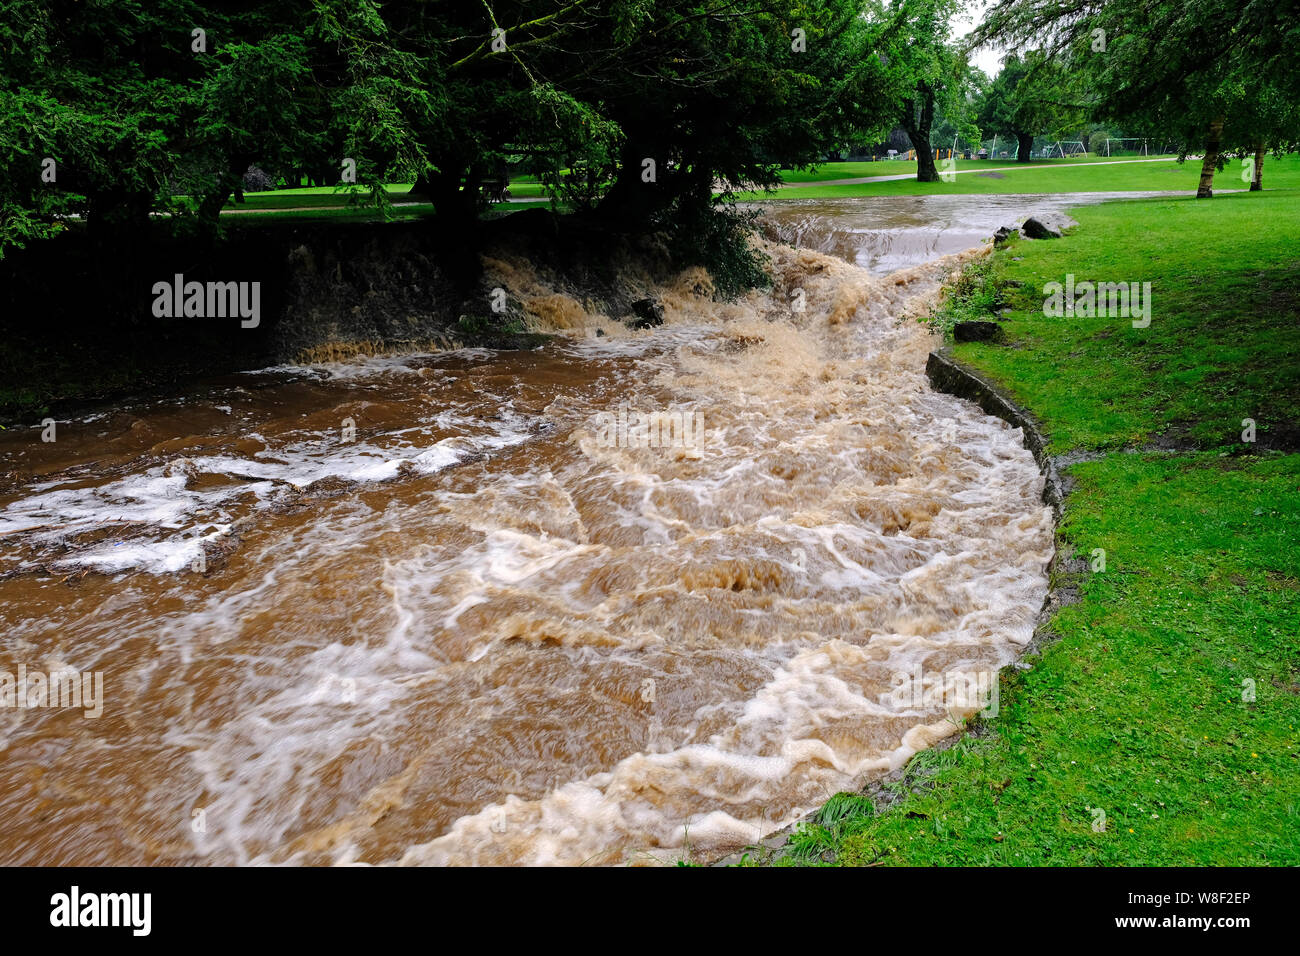 The River Wye in Buxton swollen with floodwater after heavy summer rain Stock Photo